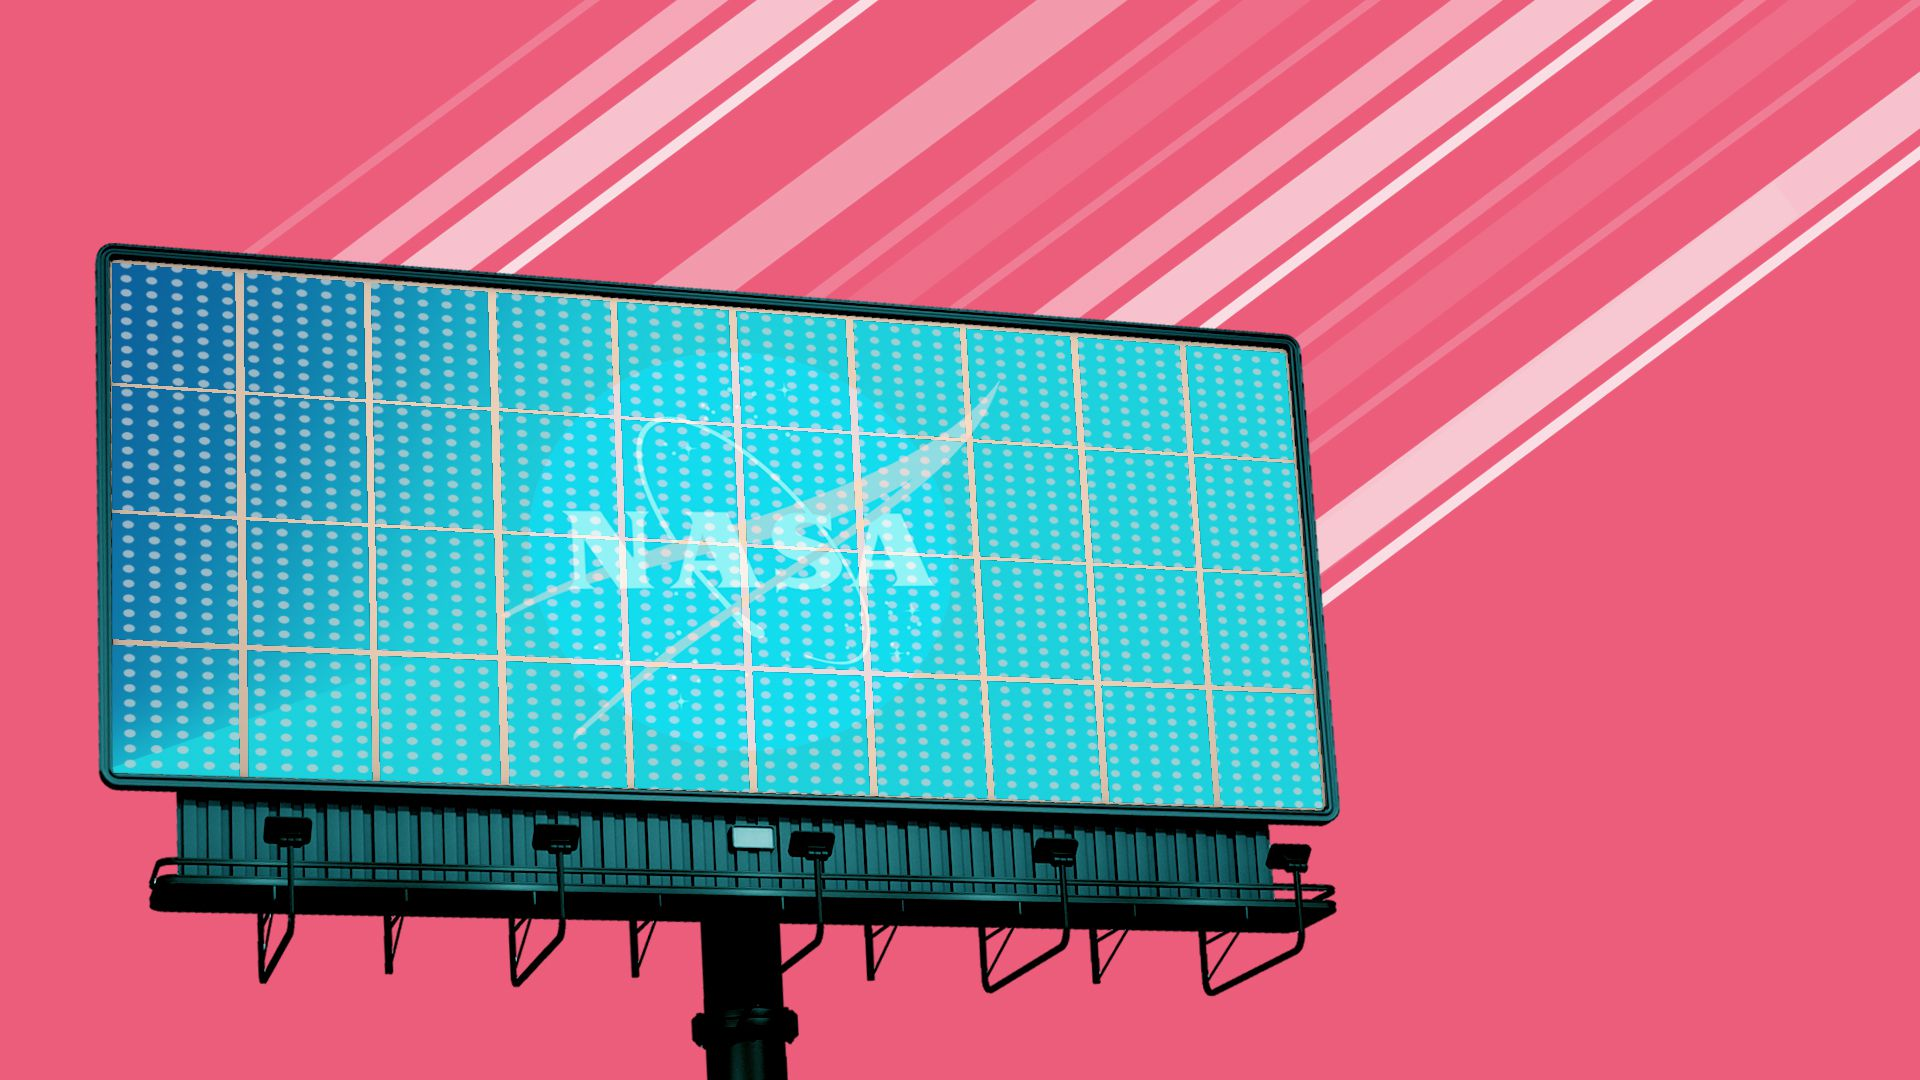 Illustration of a billboard advertisement for NASA